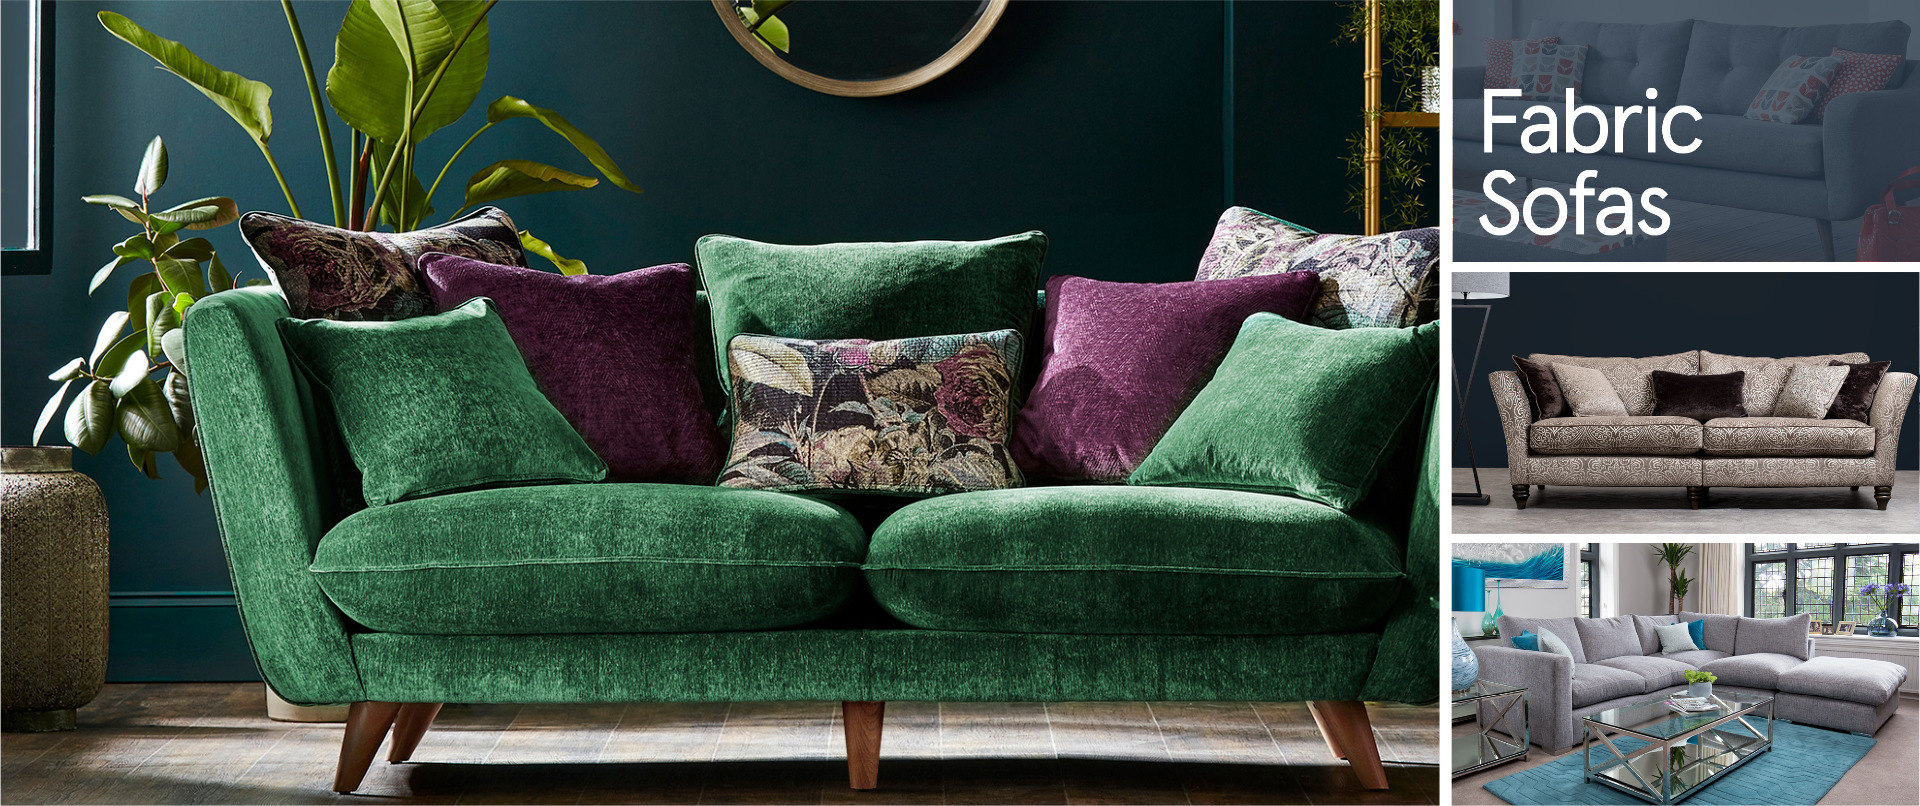 All Fabric Sofa Ranges